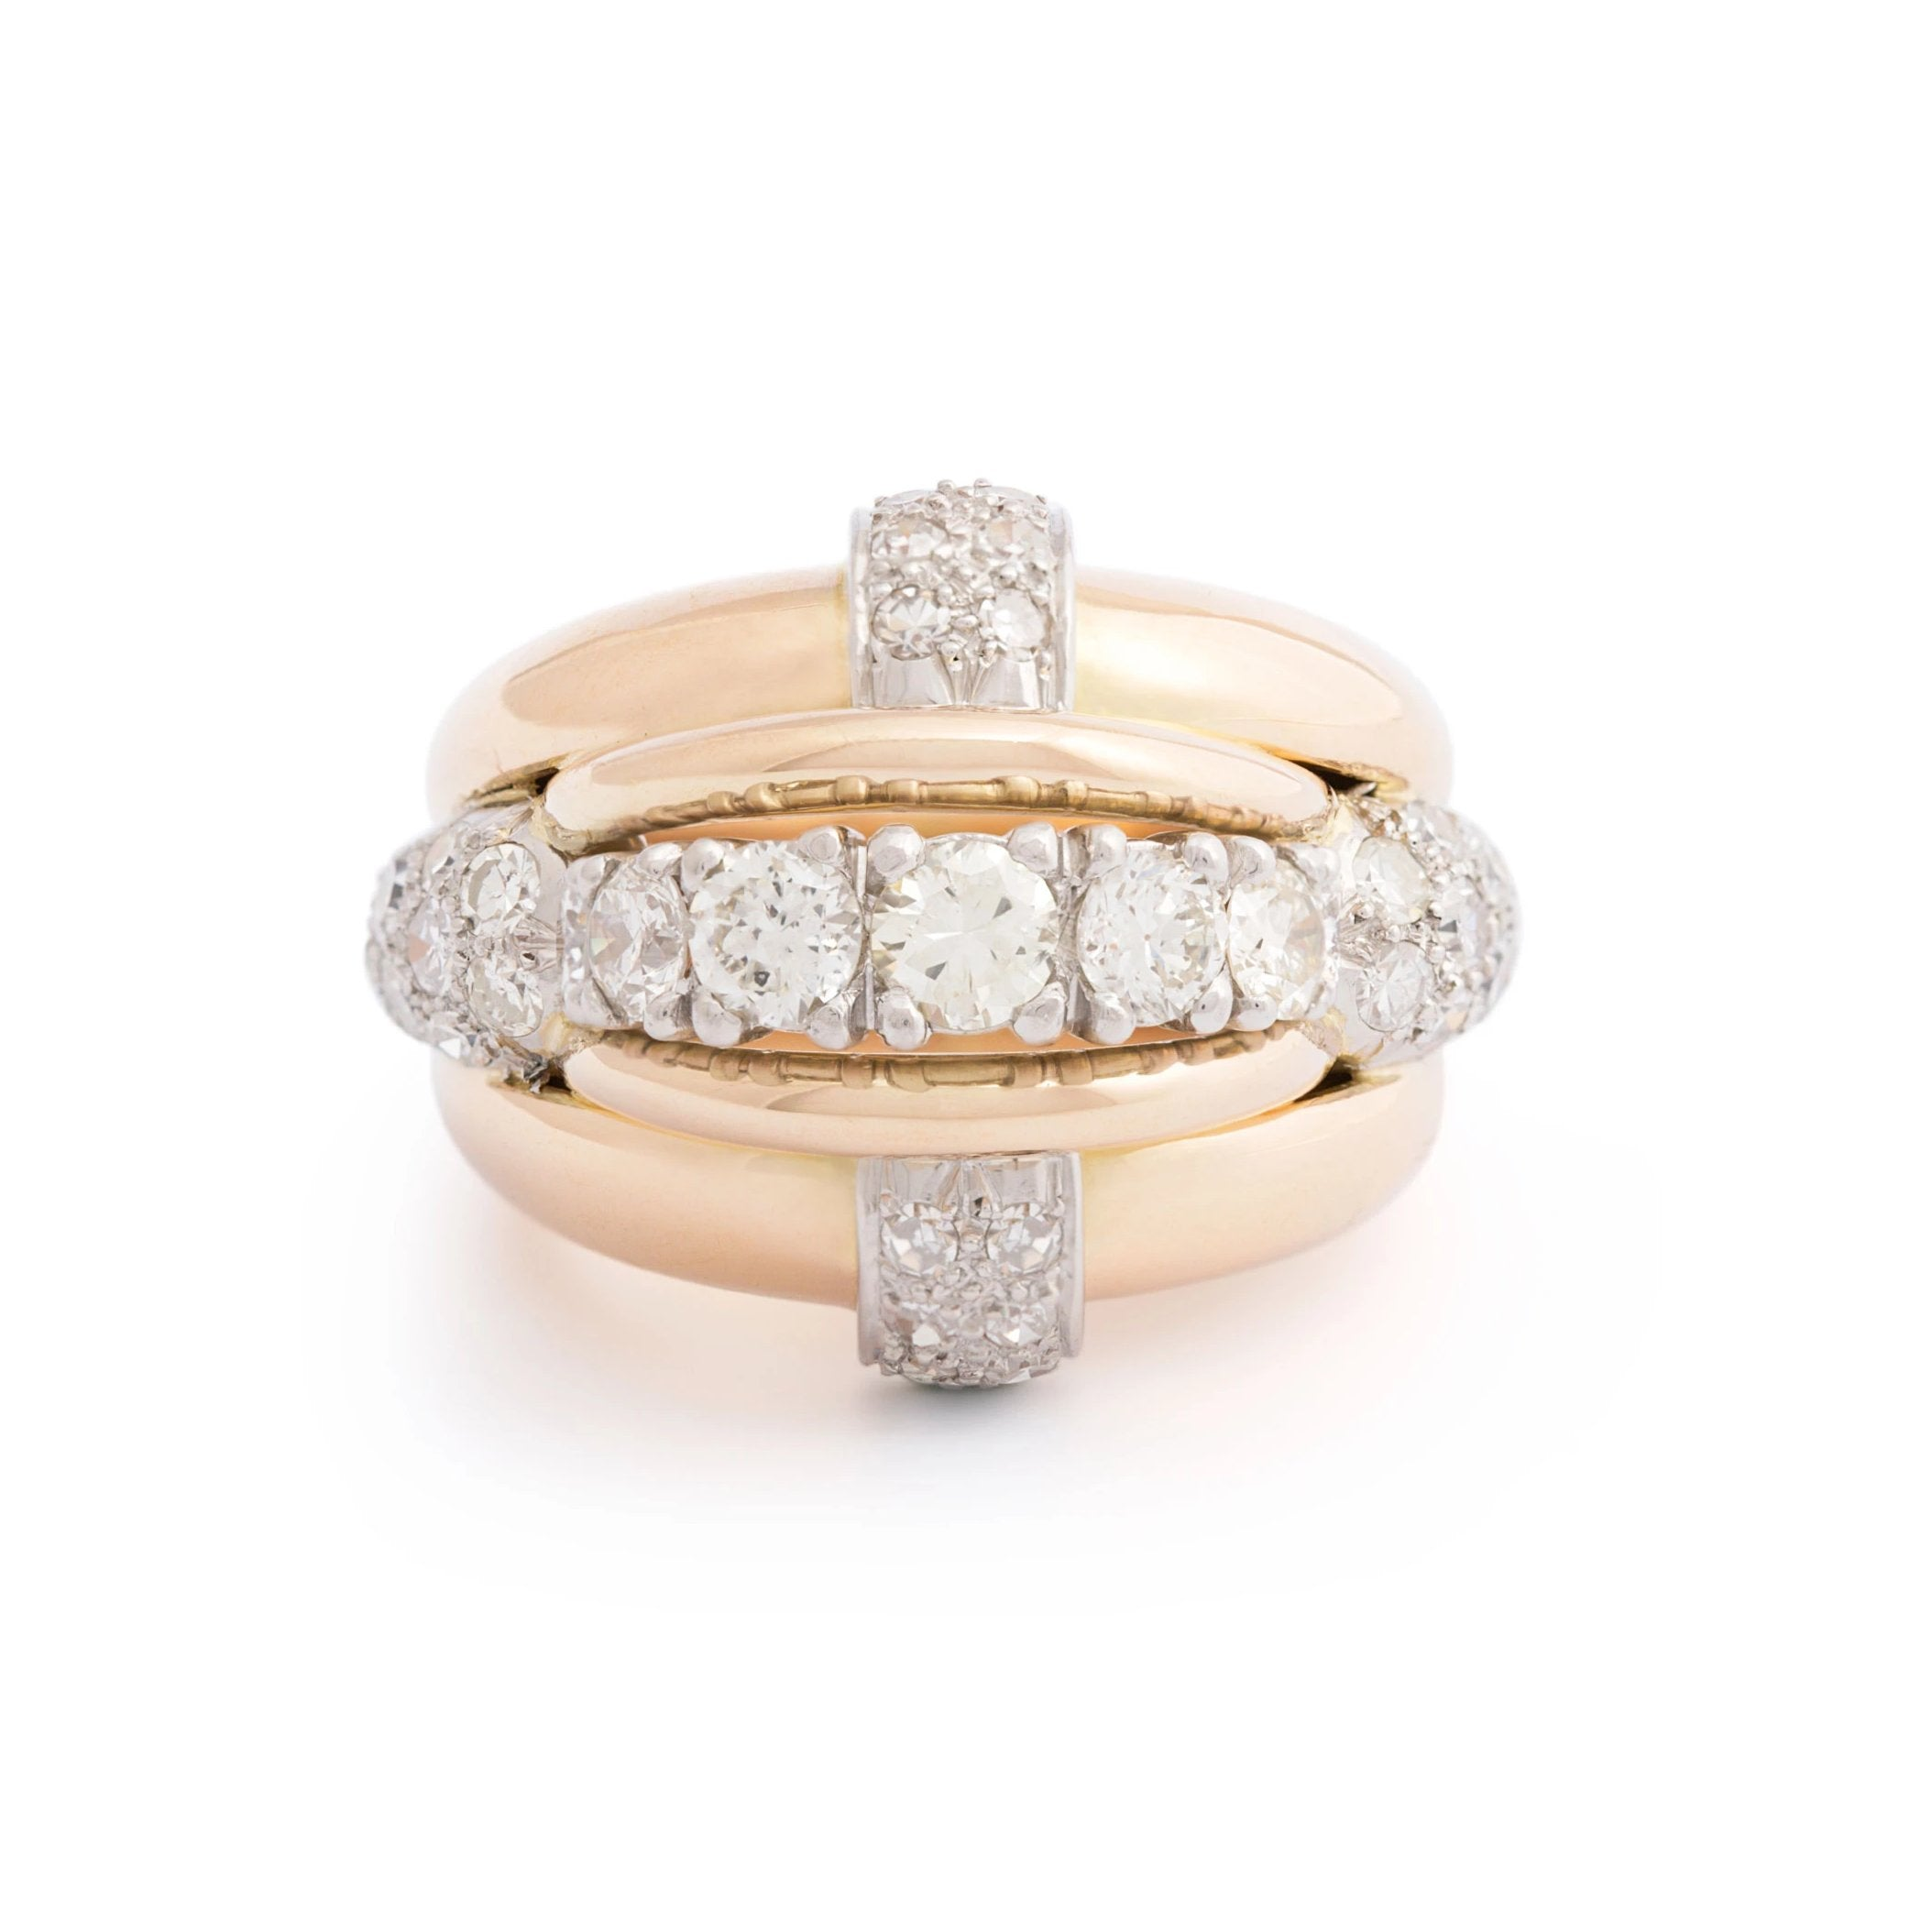 Retro Diamond, 18K Gold, and Platinum Bombe Cocktail Ring